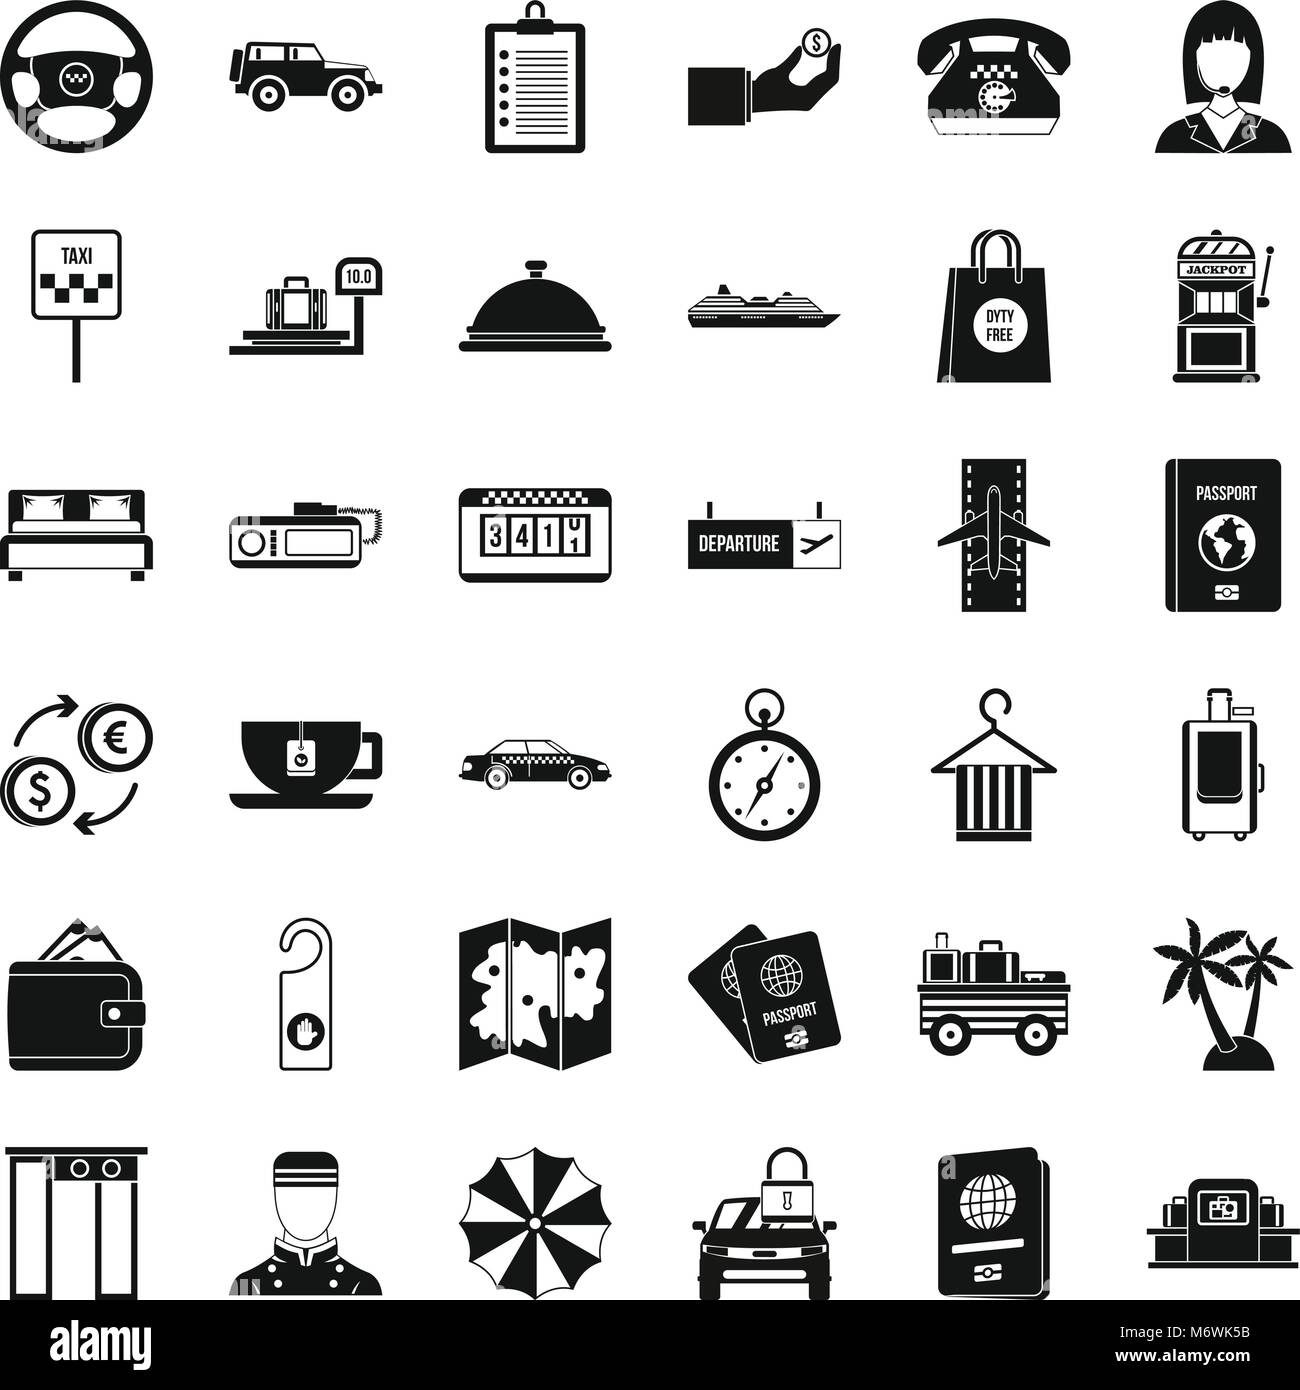 Loot icons set, simple style - Stock Image